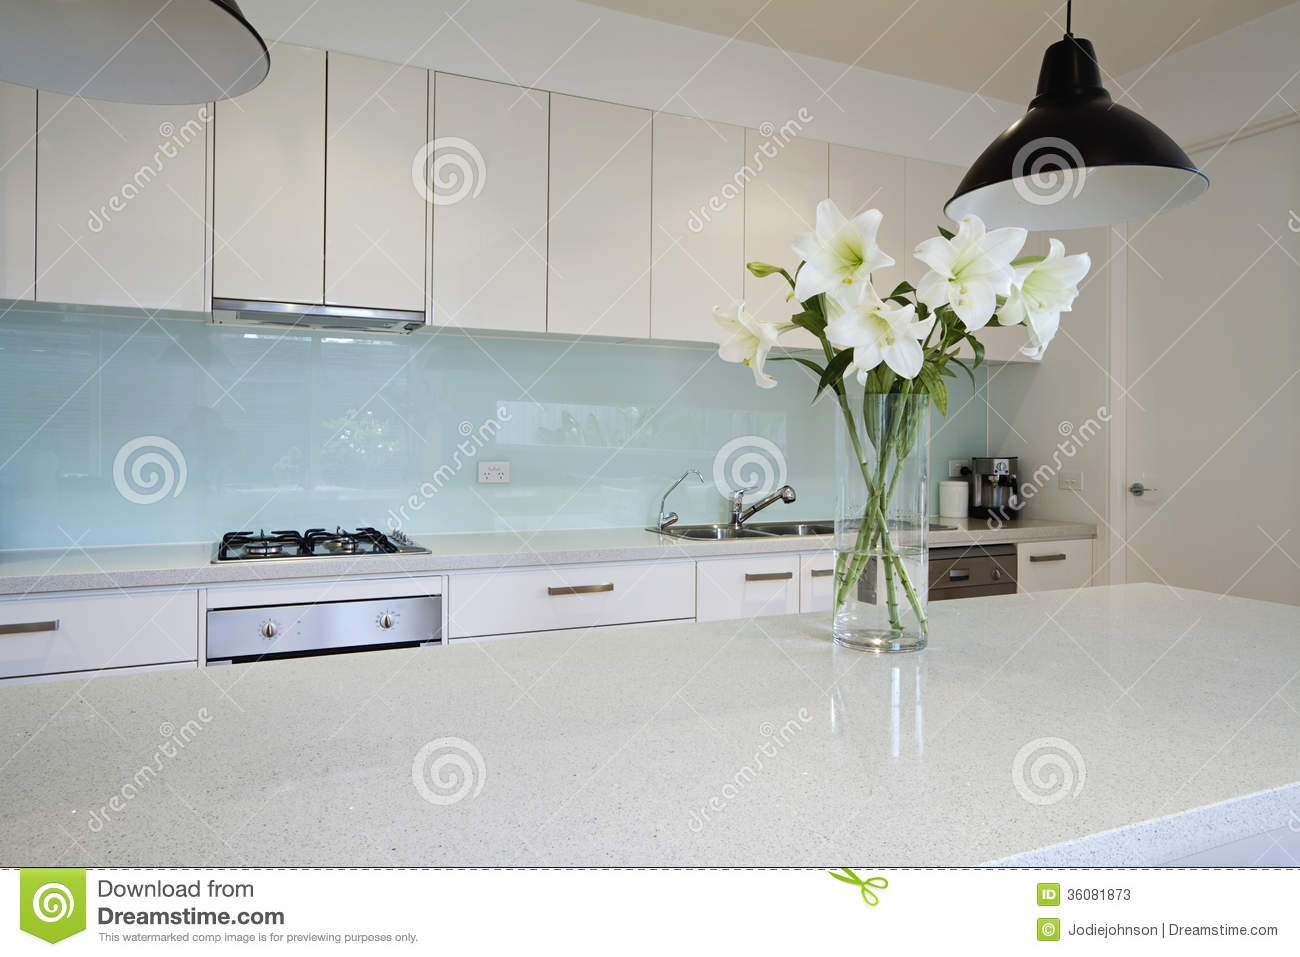 white kitchen bench rugs for the flowers on contemporary stock image of luxury